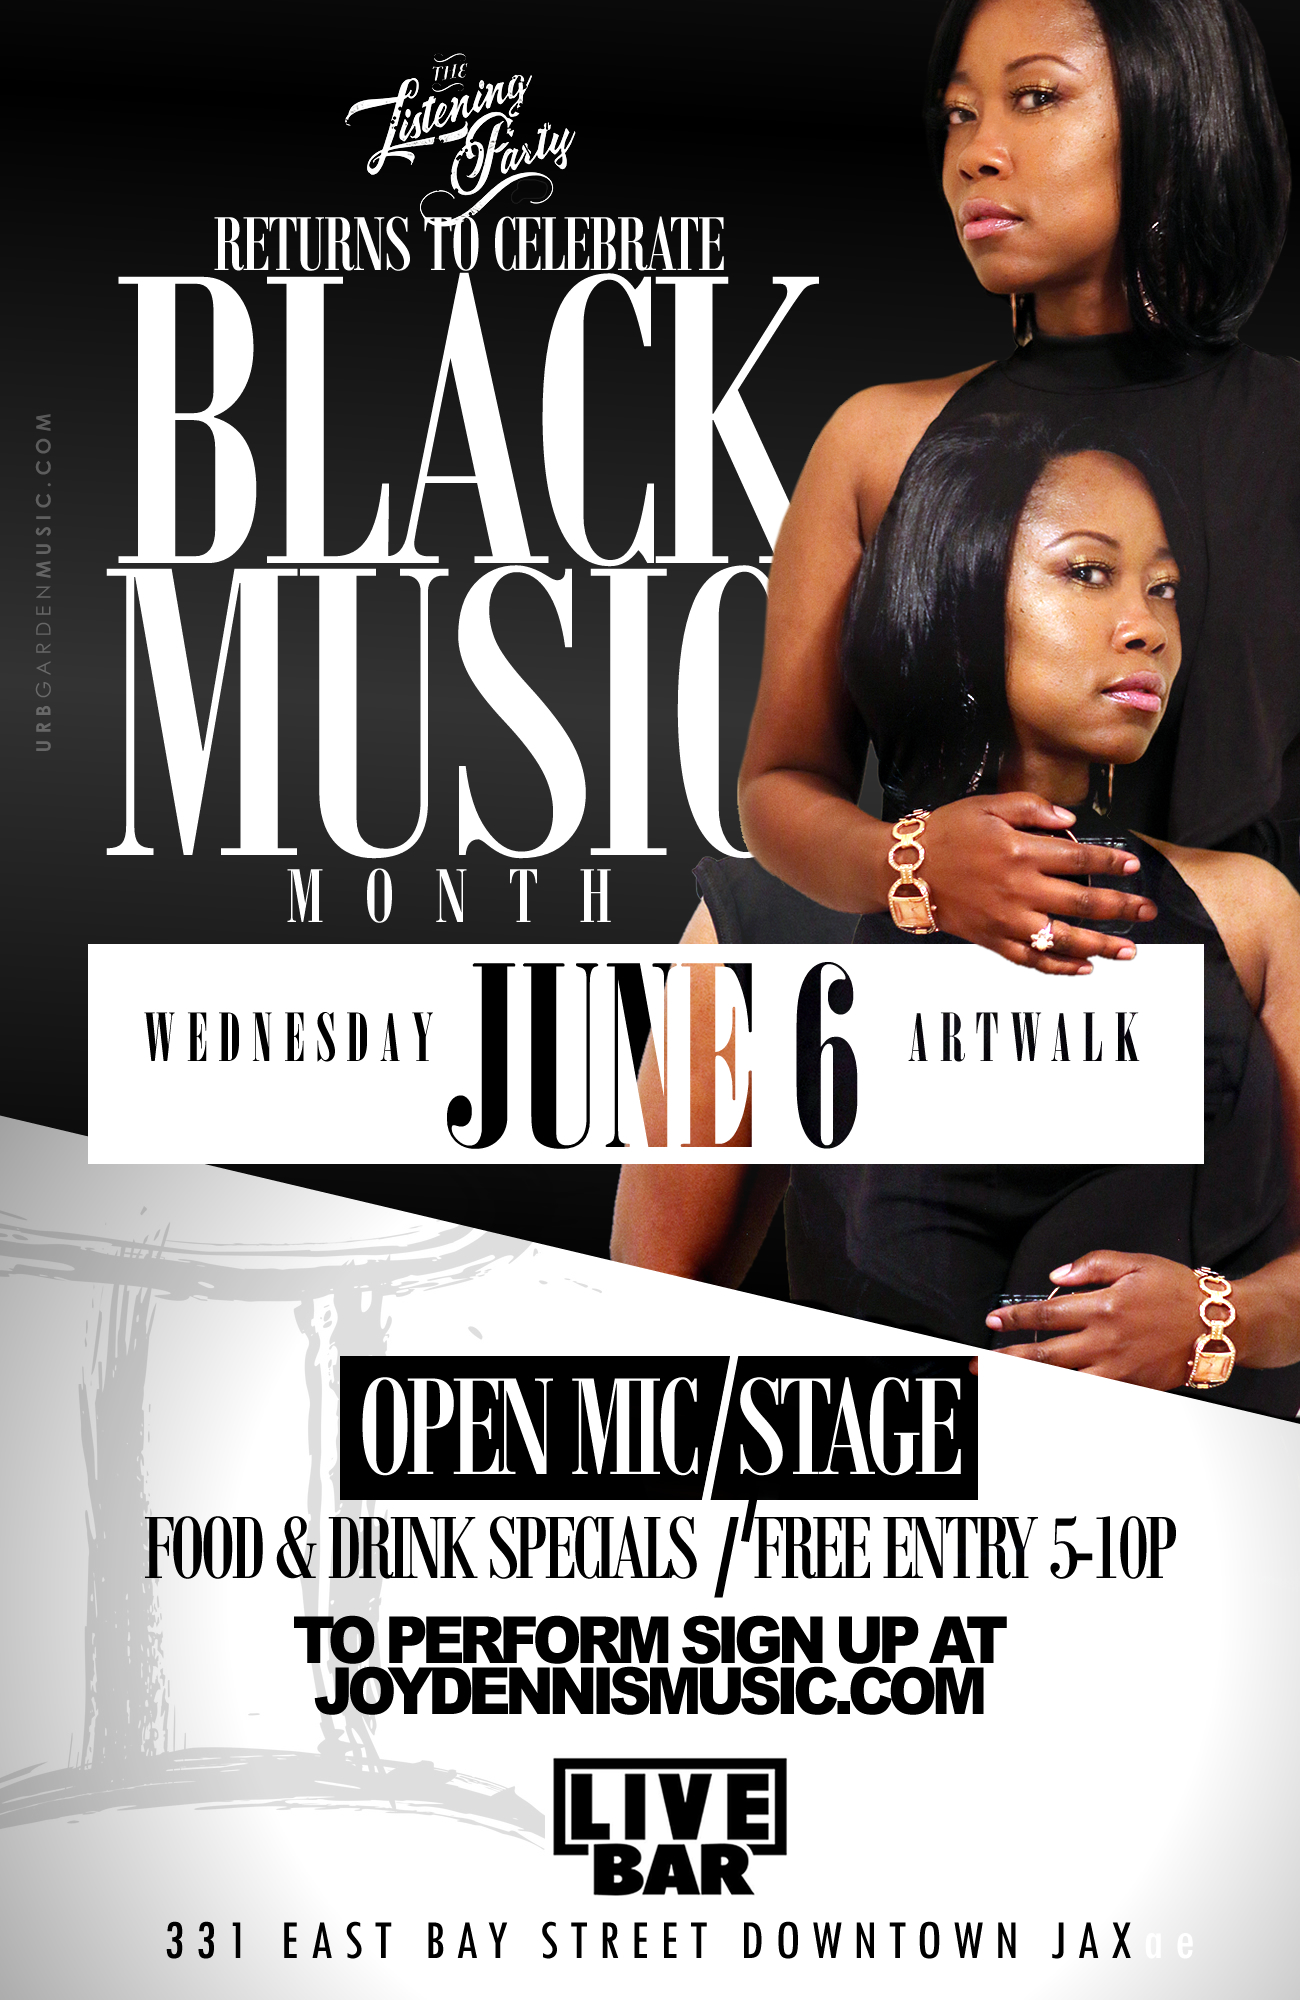 Black Music Month Celebration & Open Mic (June 6 – Artwalk)